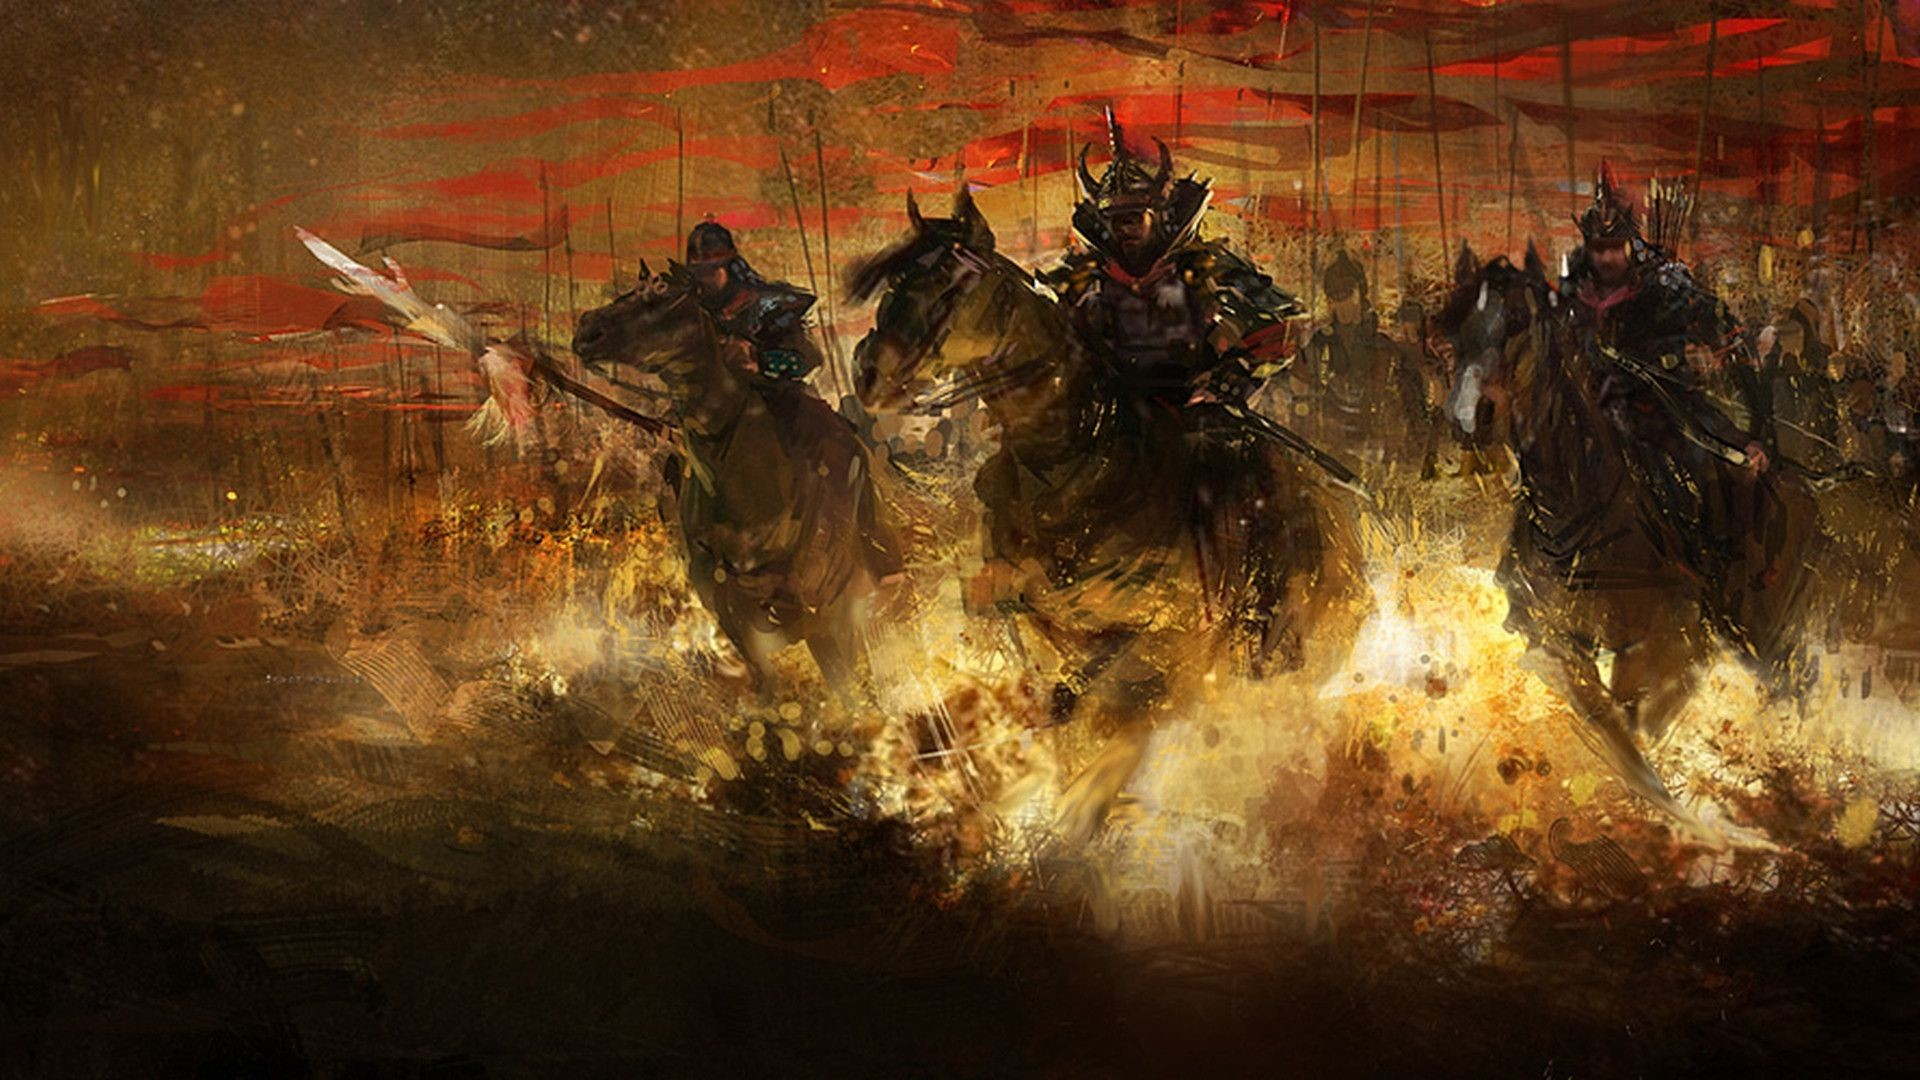 Res: 1920x1080, 100% Quality Samurai HD Wallpapers,  for PC & Mac, Laptop, Tablet,  Mobile Phone